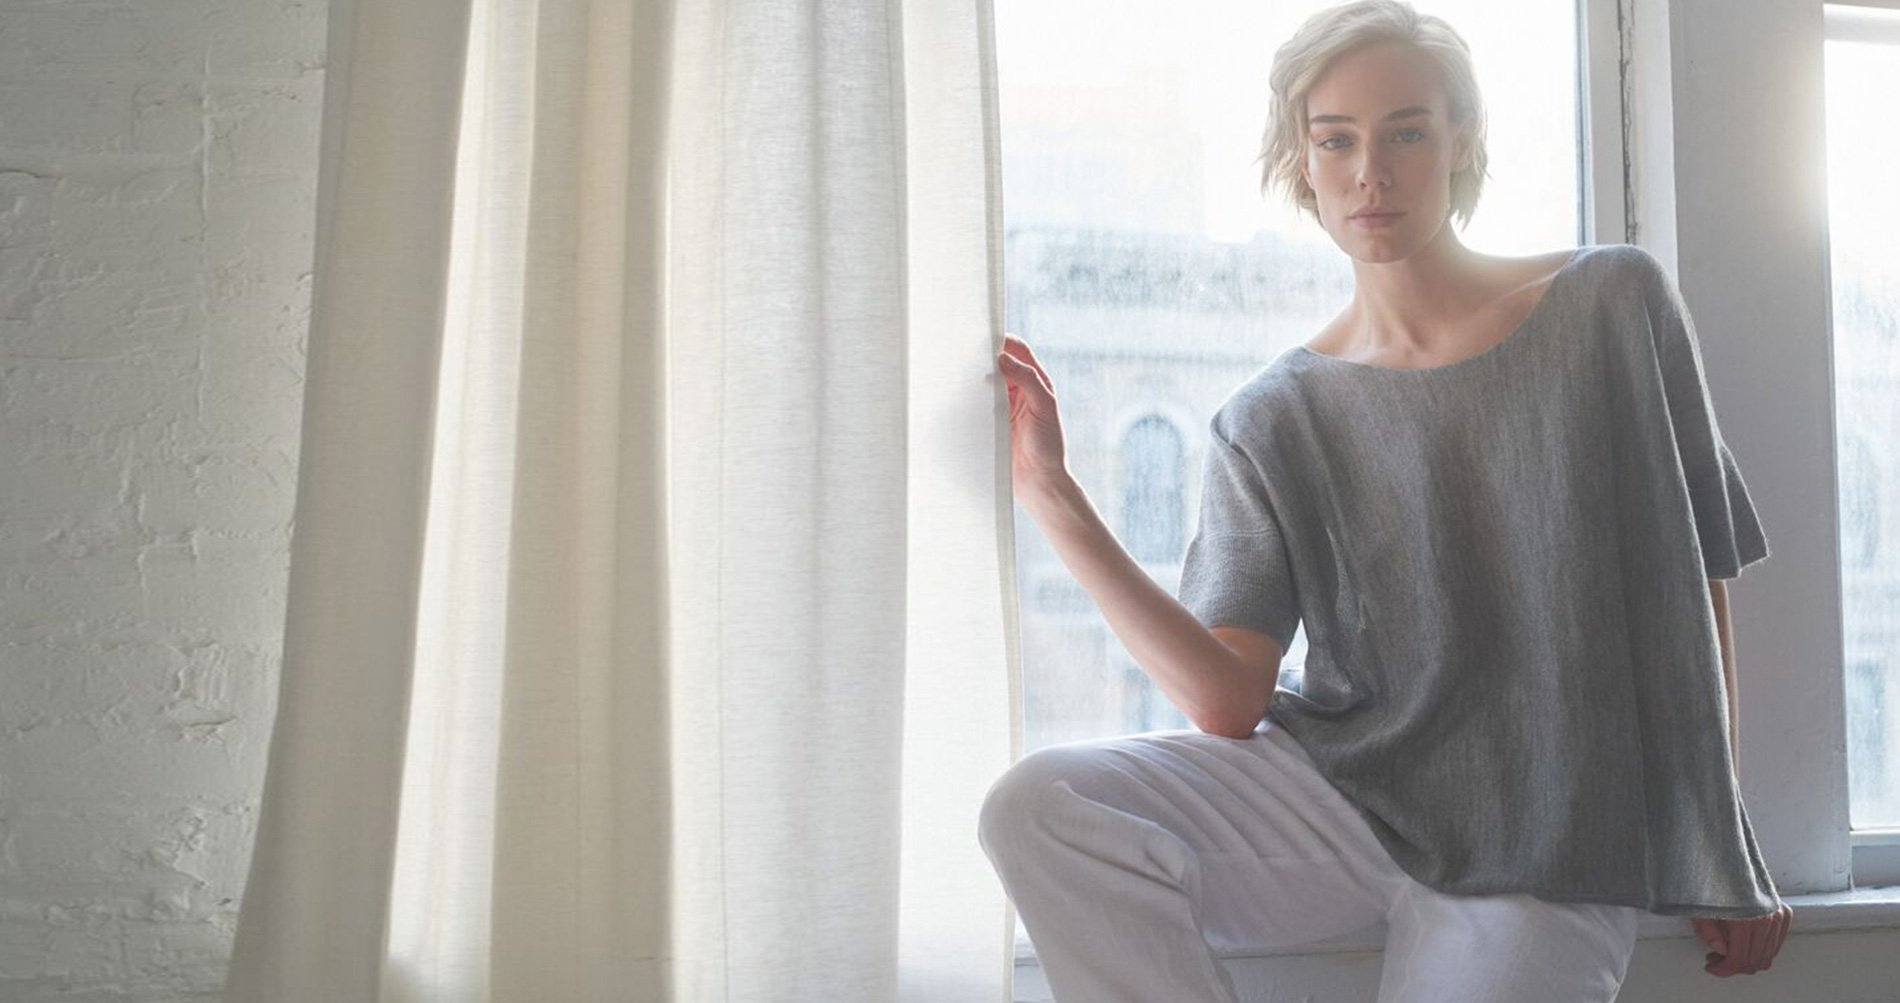 Detox Your Closet With These 27 Organic Clothing Brands for Women